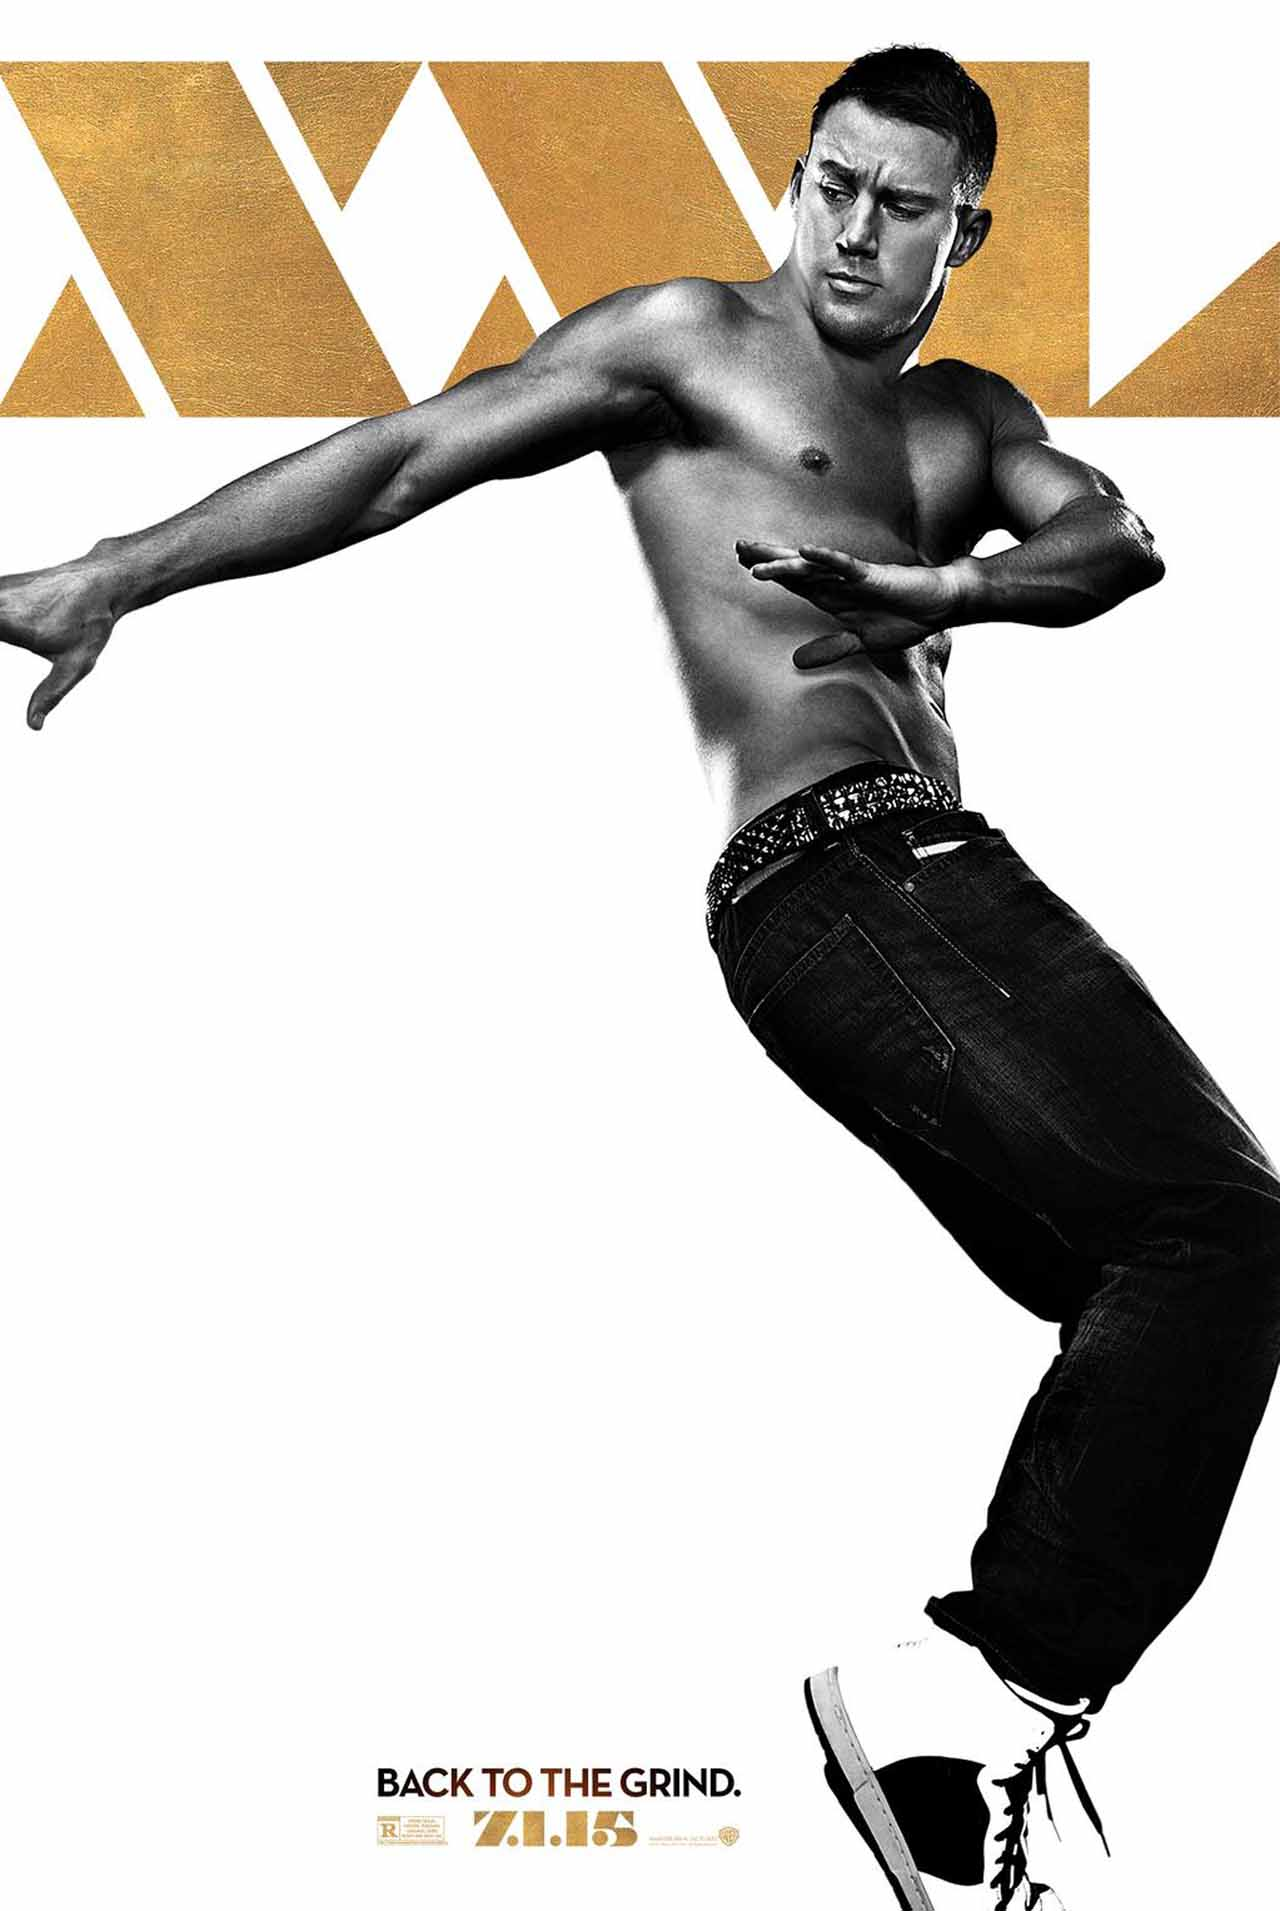 Channing Tatum Appears in New 'Magic Mike XXL' Poster + More Movie Images